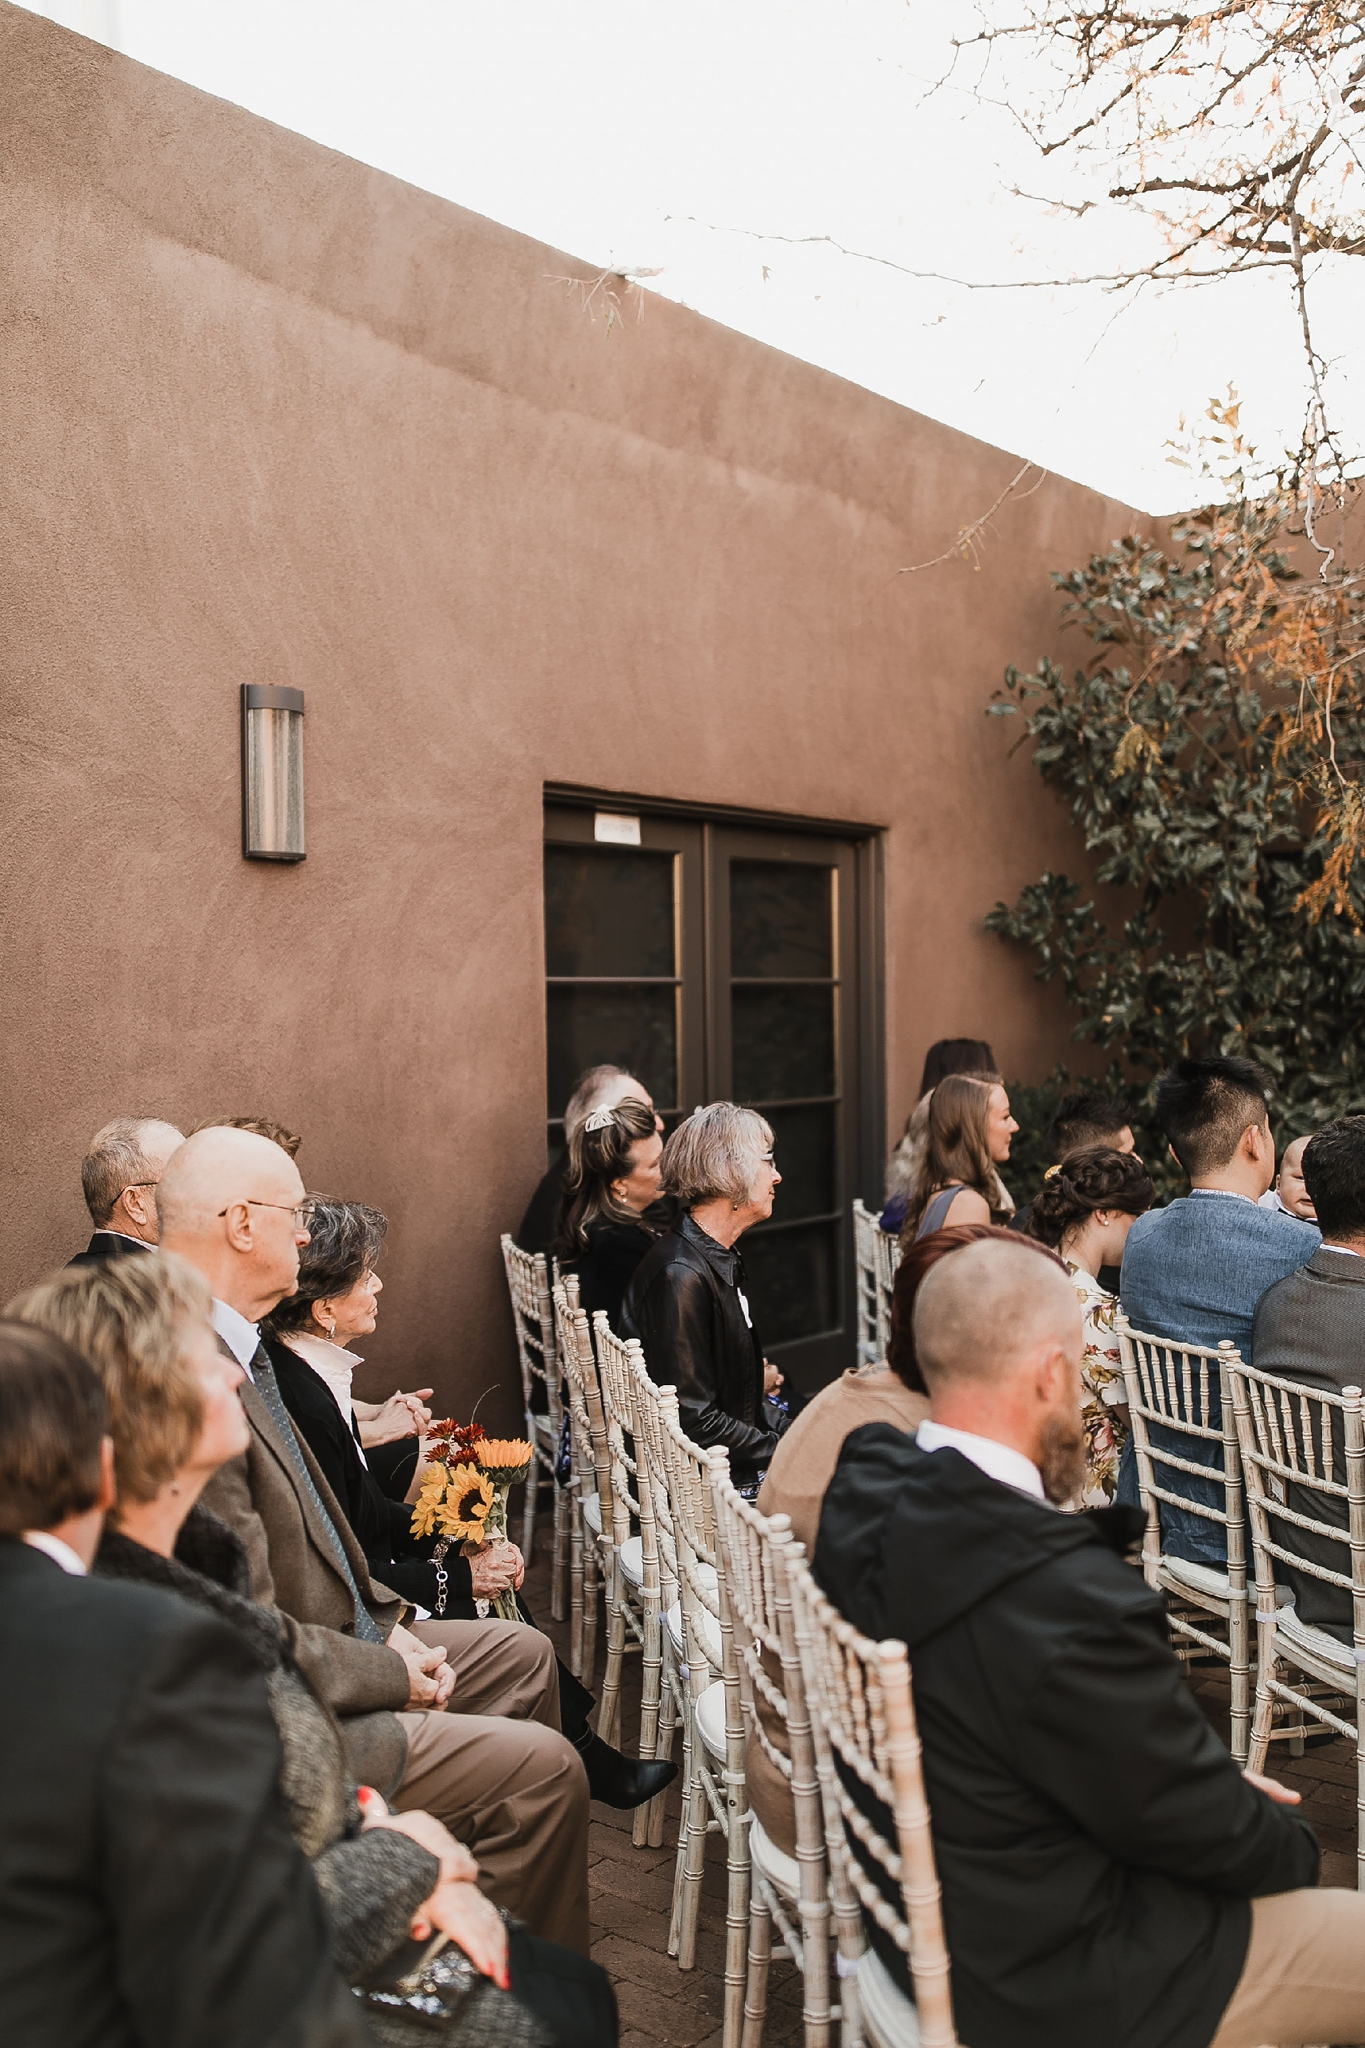 Alicia+lucia+photography+-+albuquerque+wedding+photographer+-+santa+fe+wedding+photography+-+new+mexico+wedding+photographer+-+albuquerque+wedding+-+sarabande+bed+breakfast+-+bed+and+breakfast+wedding_0049.jpg